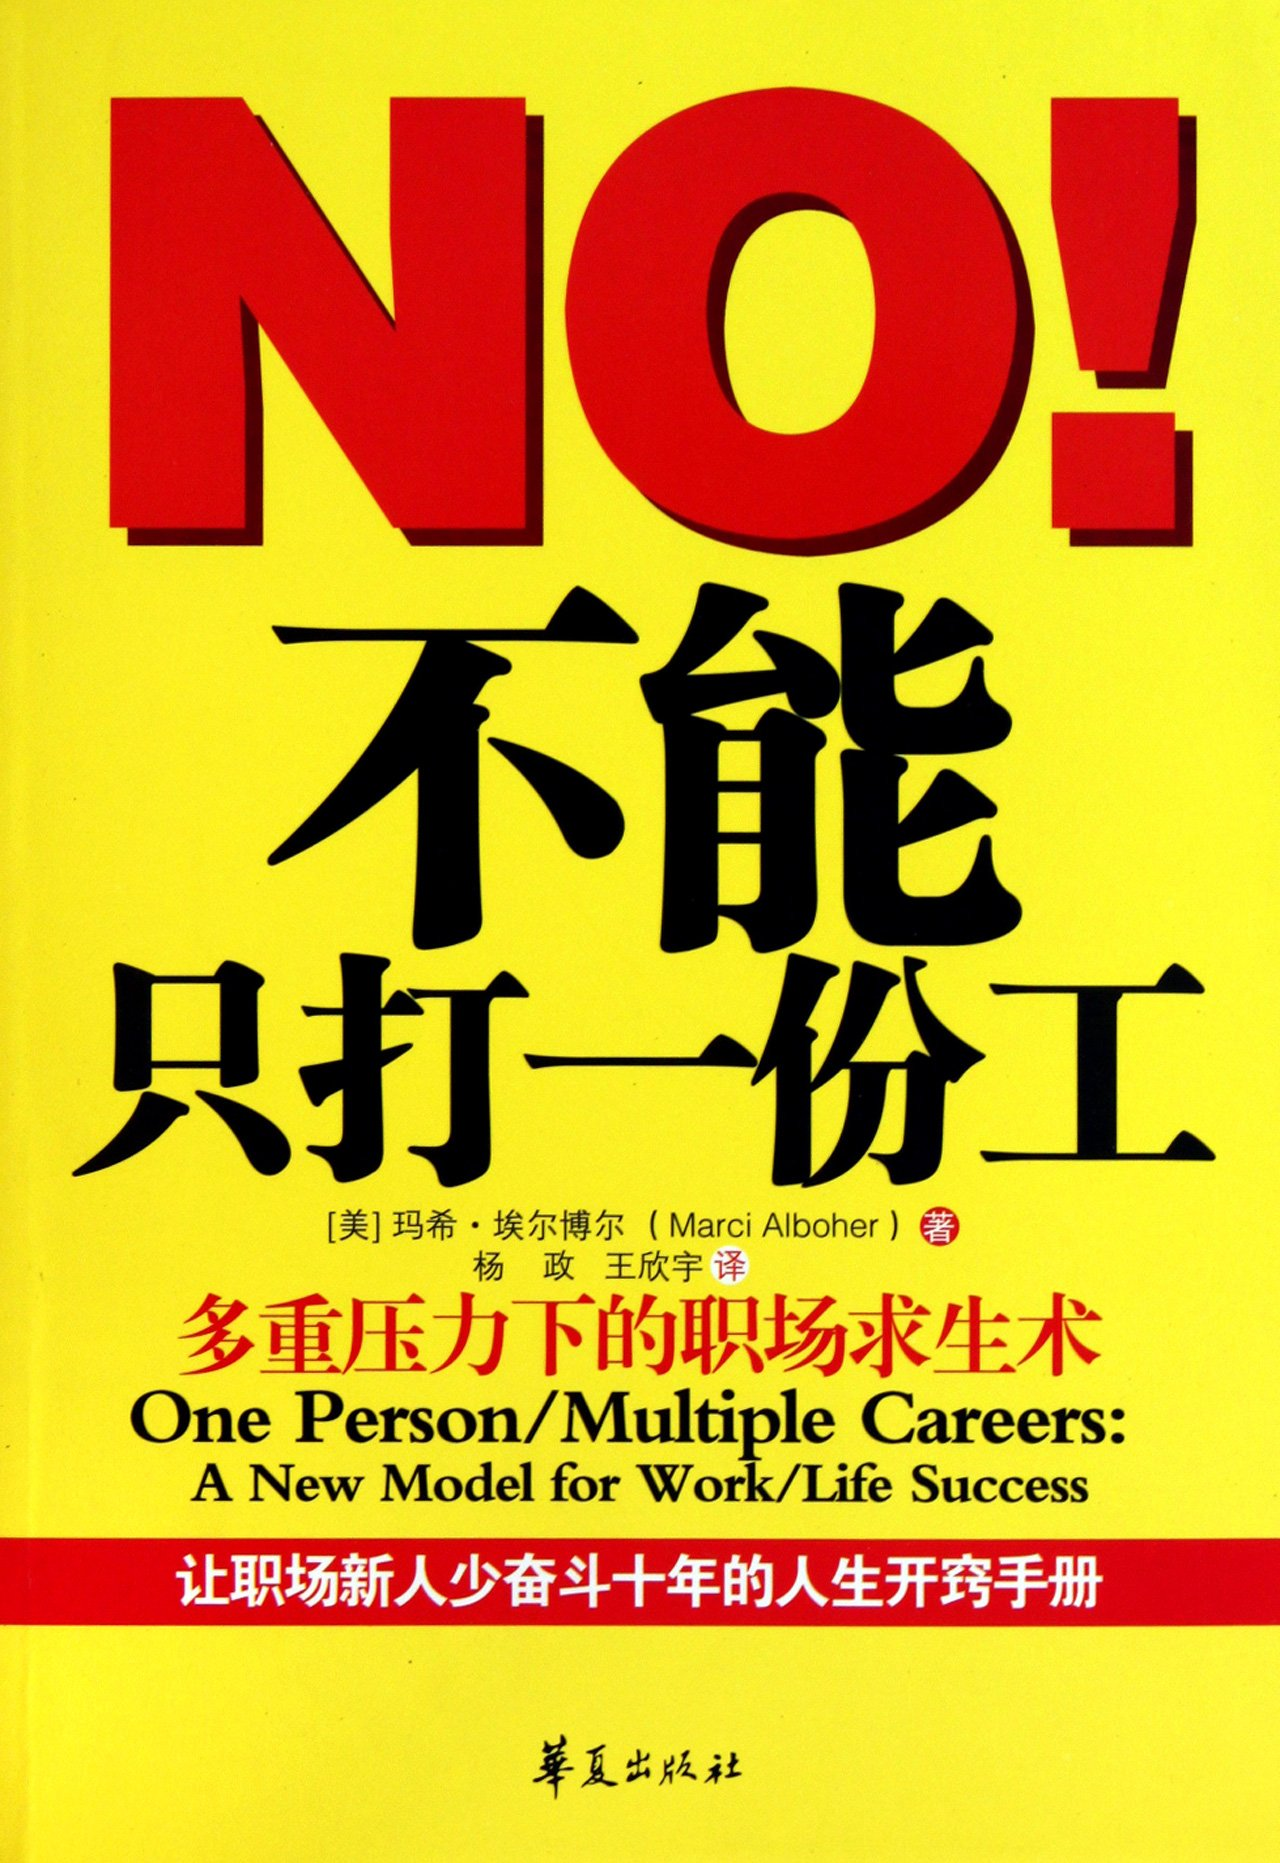 One Job is NOT Enough - Workplace Survival under Multiple Pressures (Chinese Edition) pdf